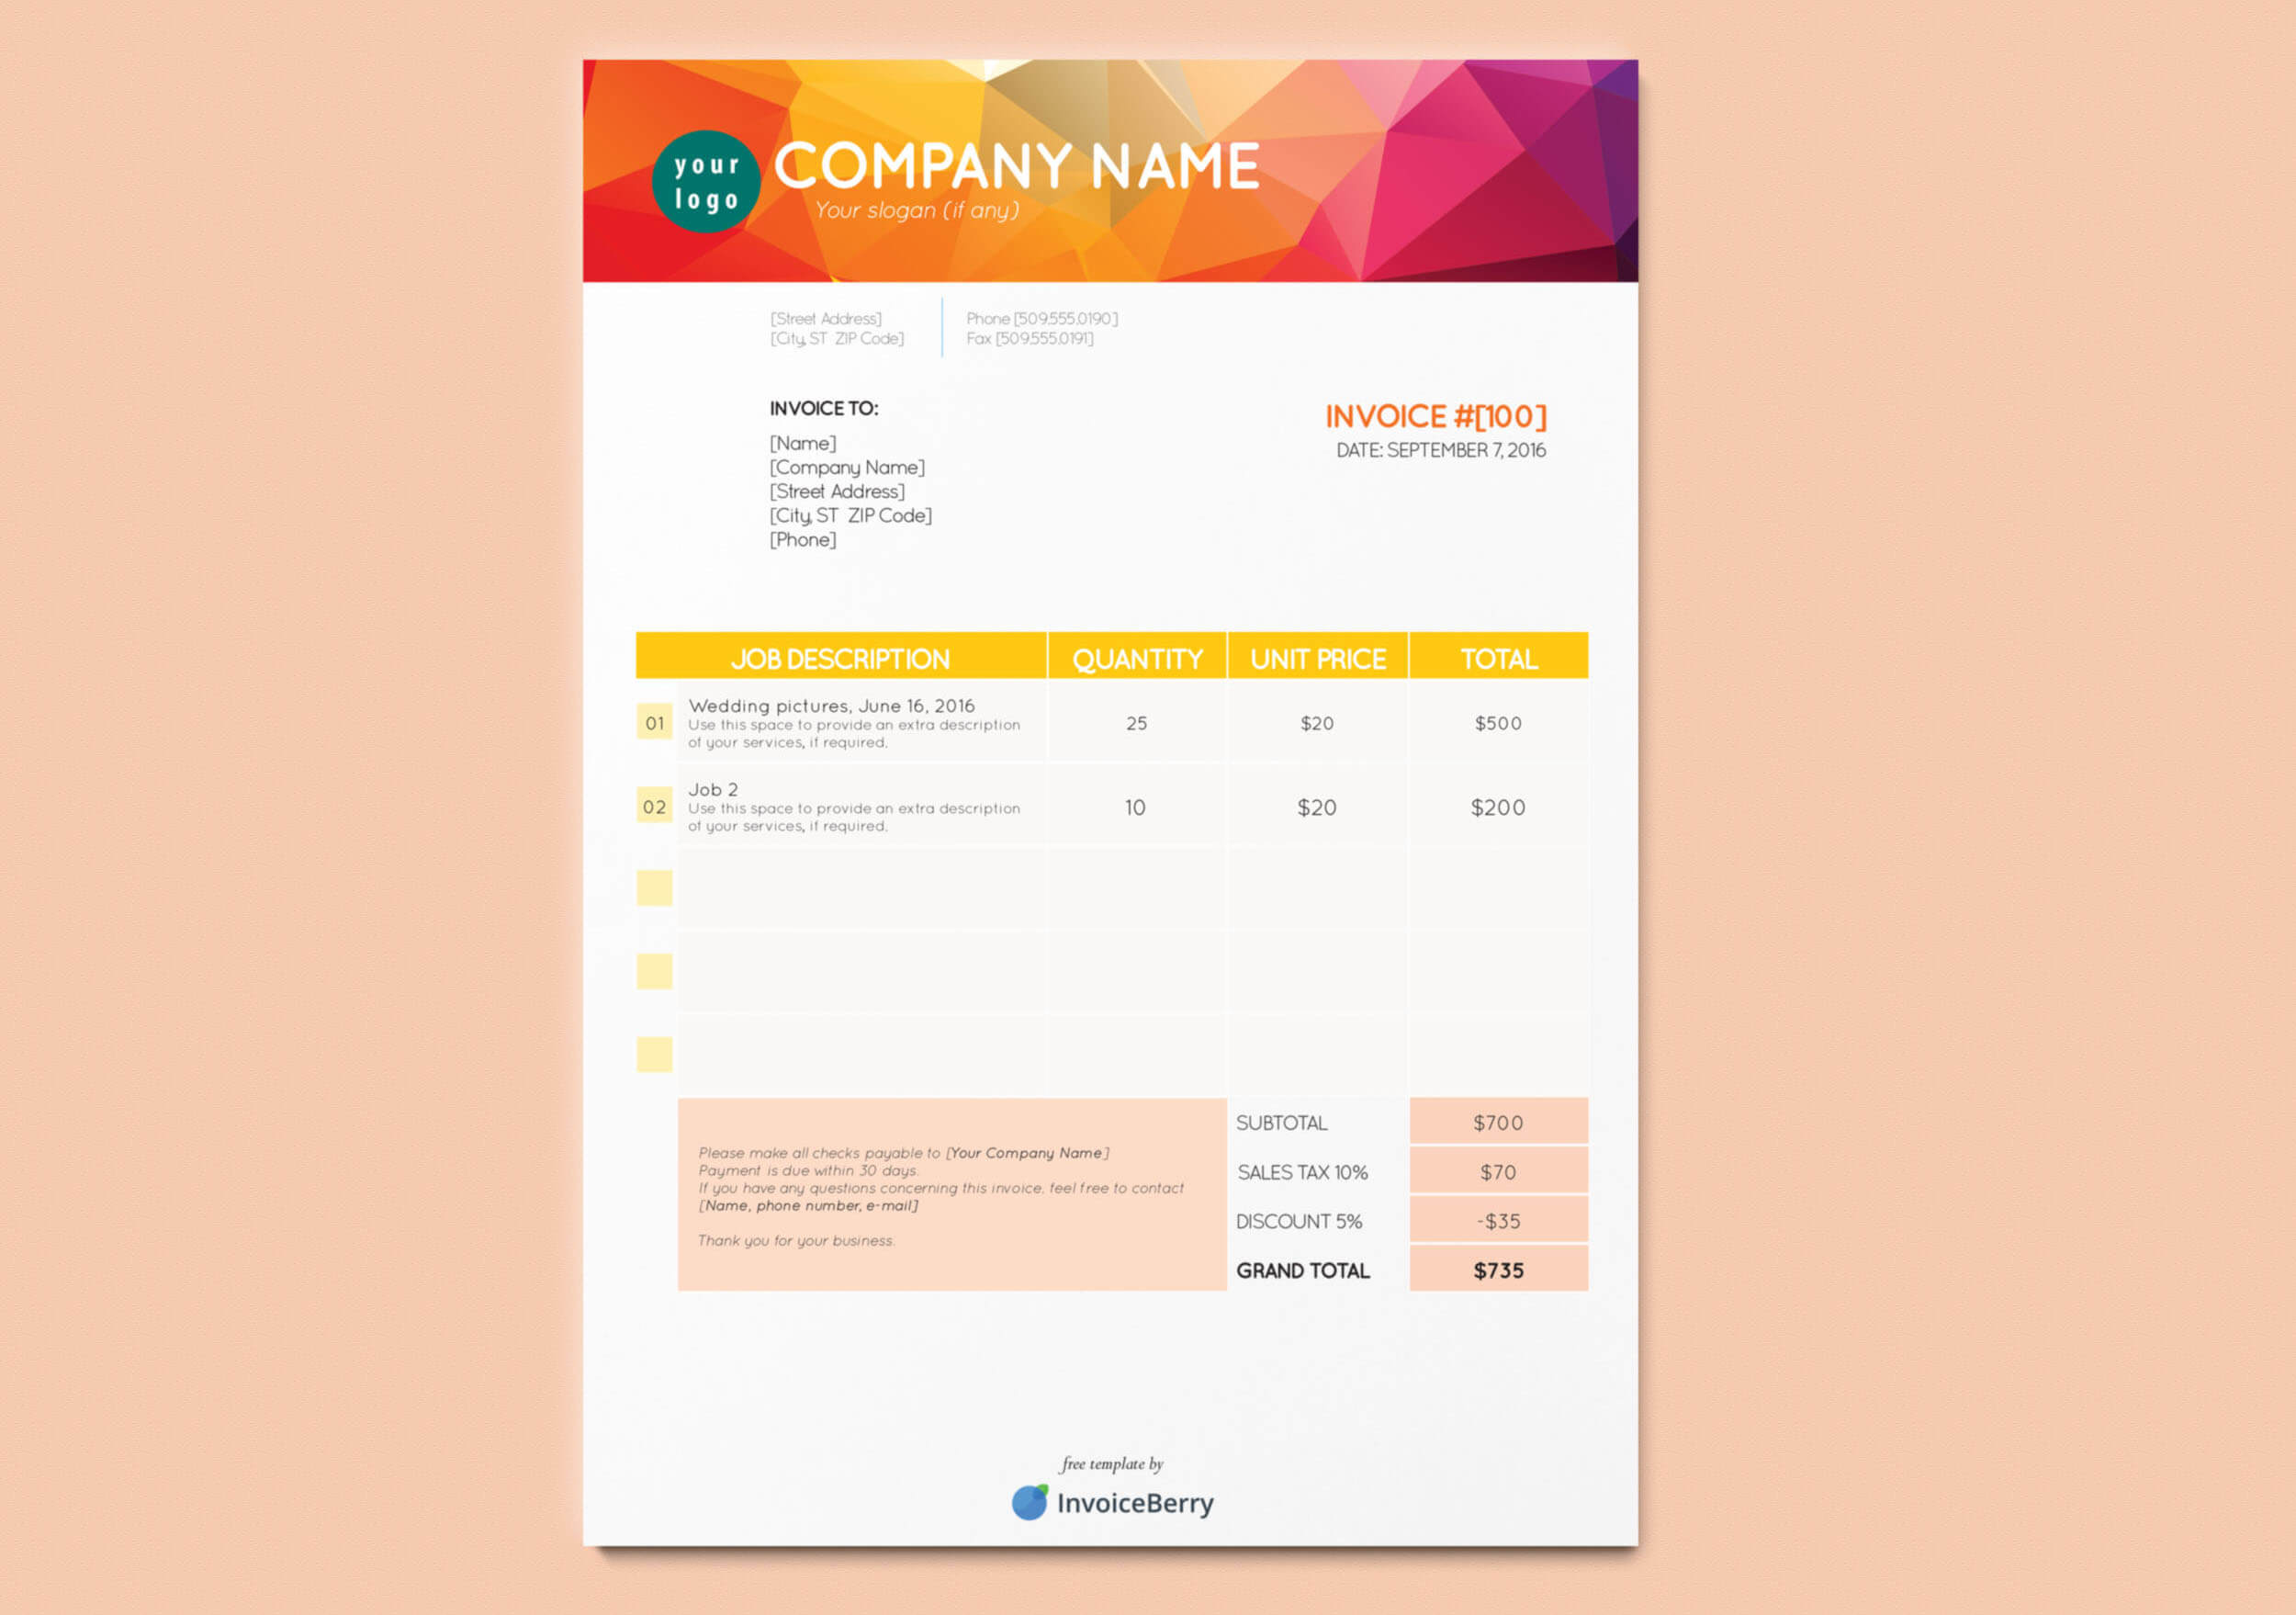 Our bright and bold Orange & Yellow free InDesign invoice template will definitely boost your personality and professionalism